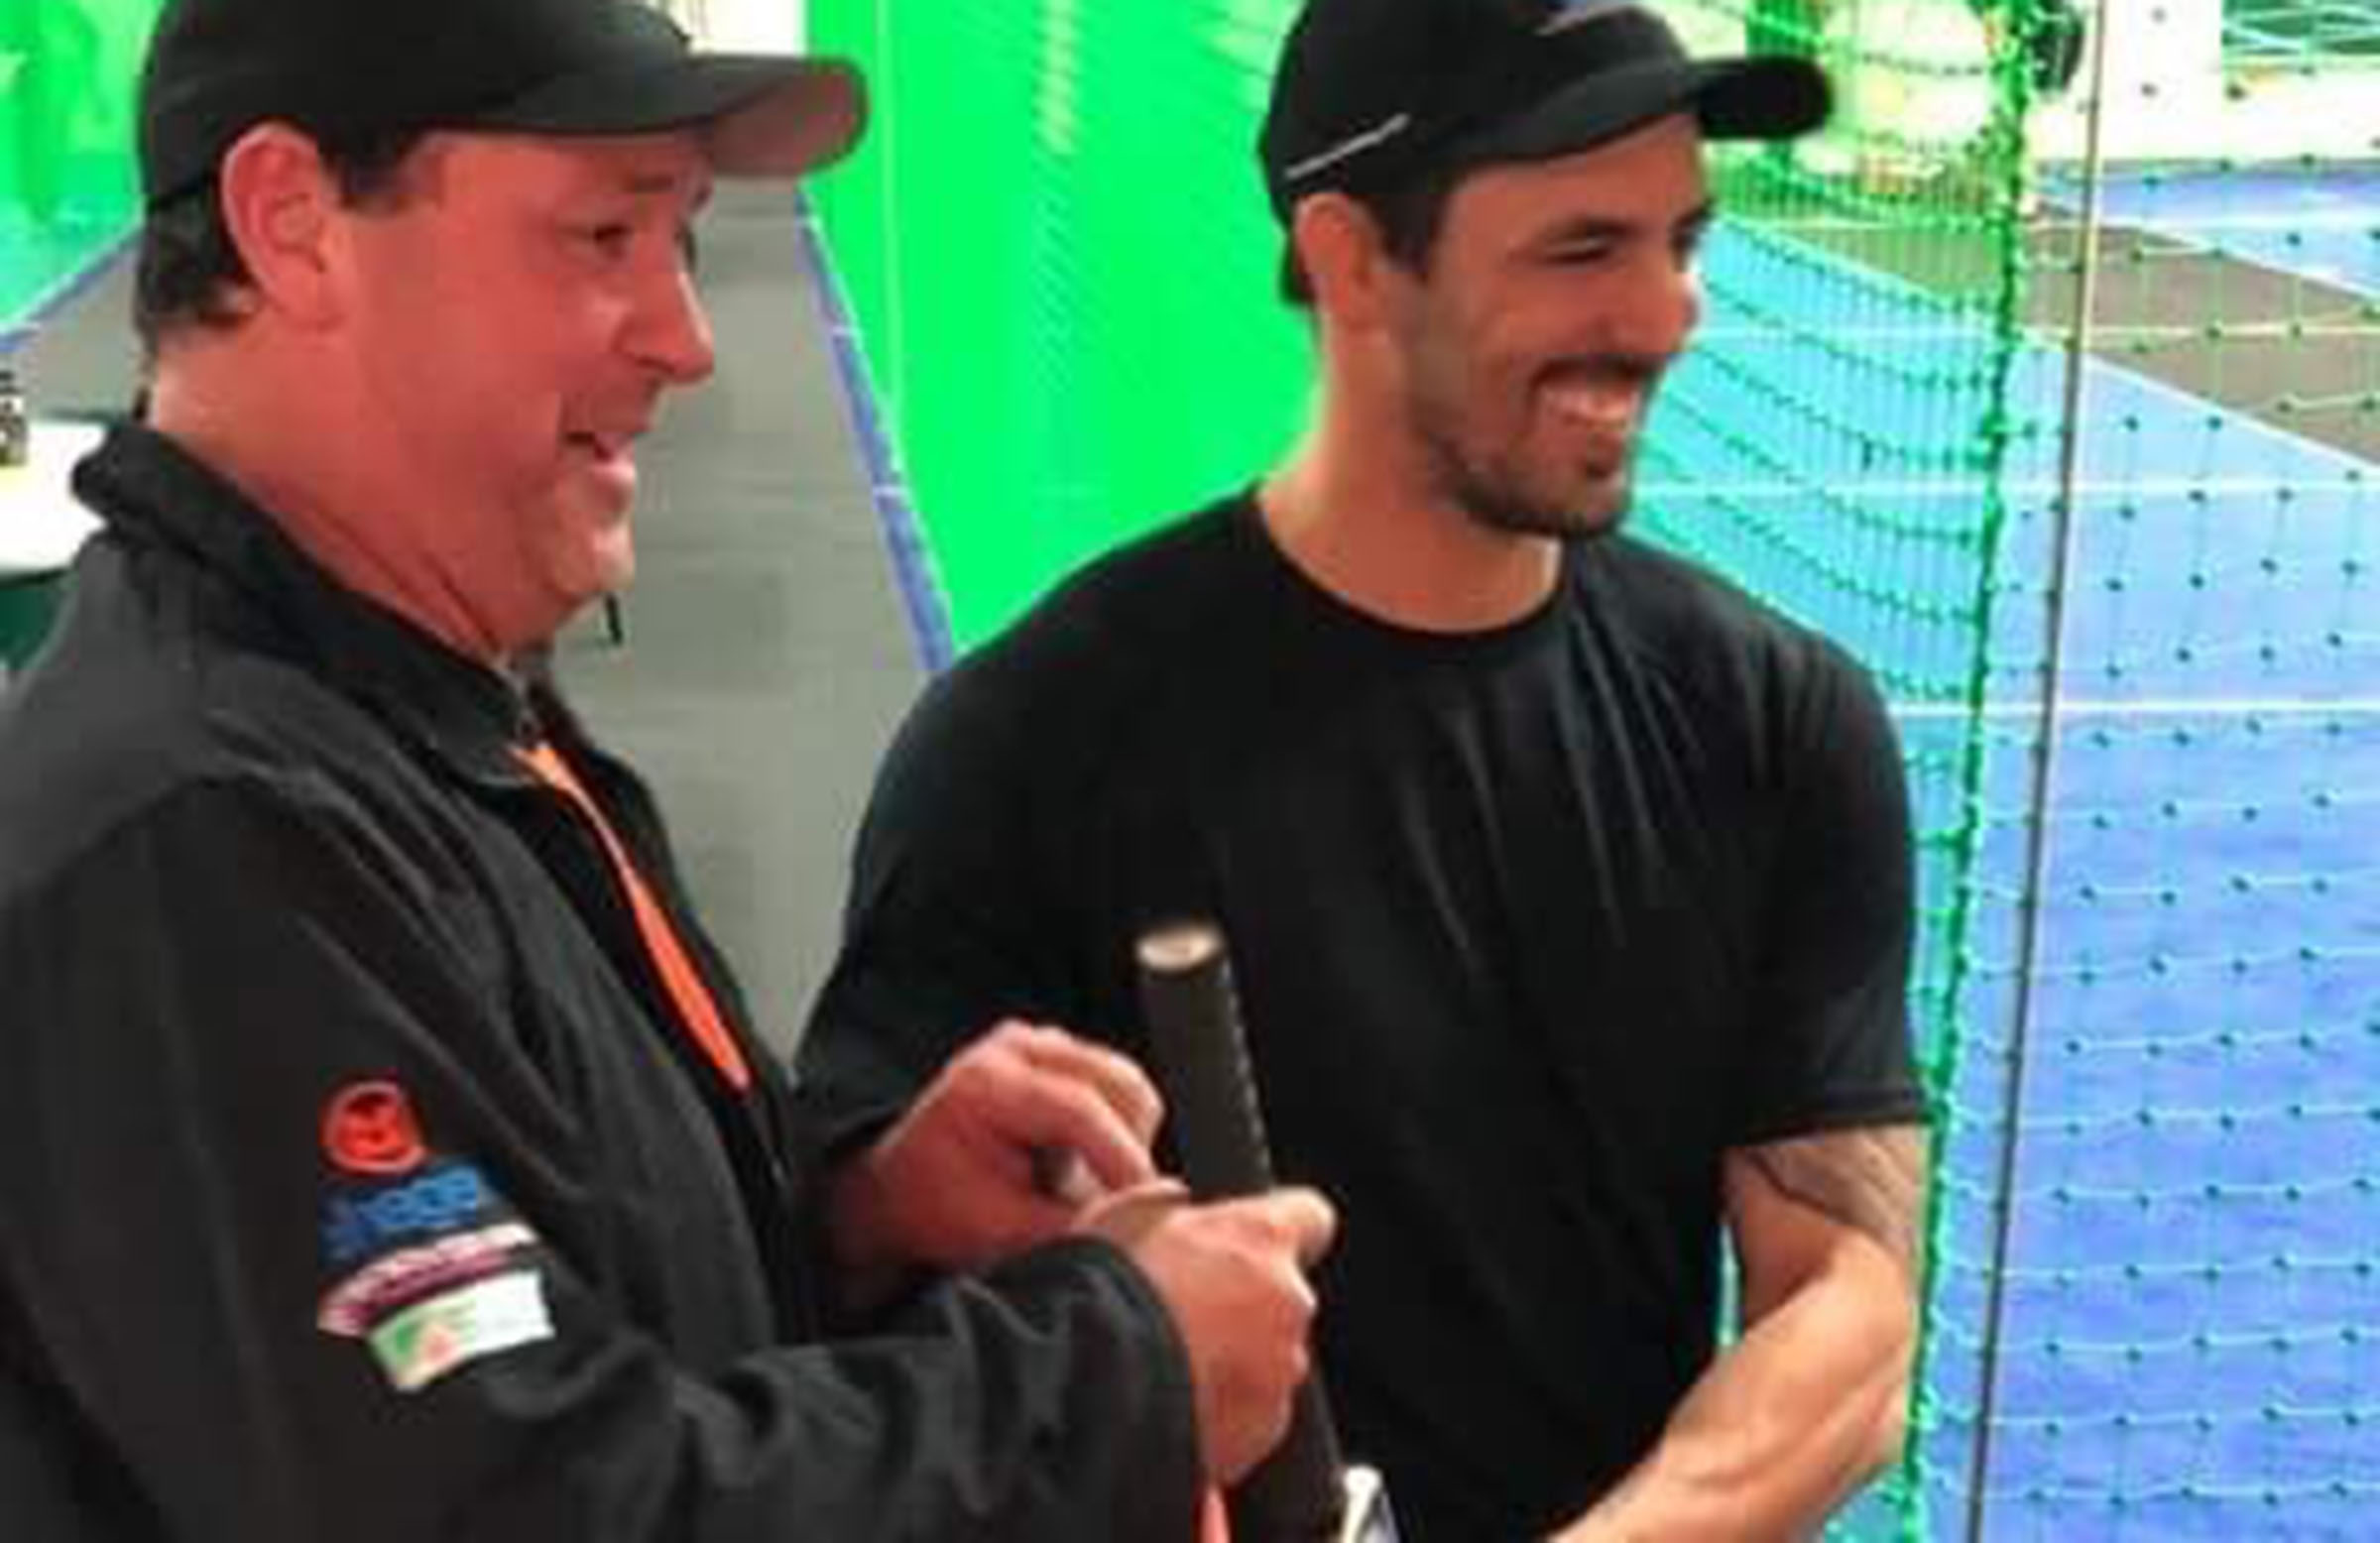 Johnson signs a bat at the Indoor centre